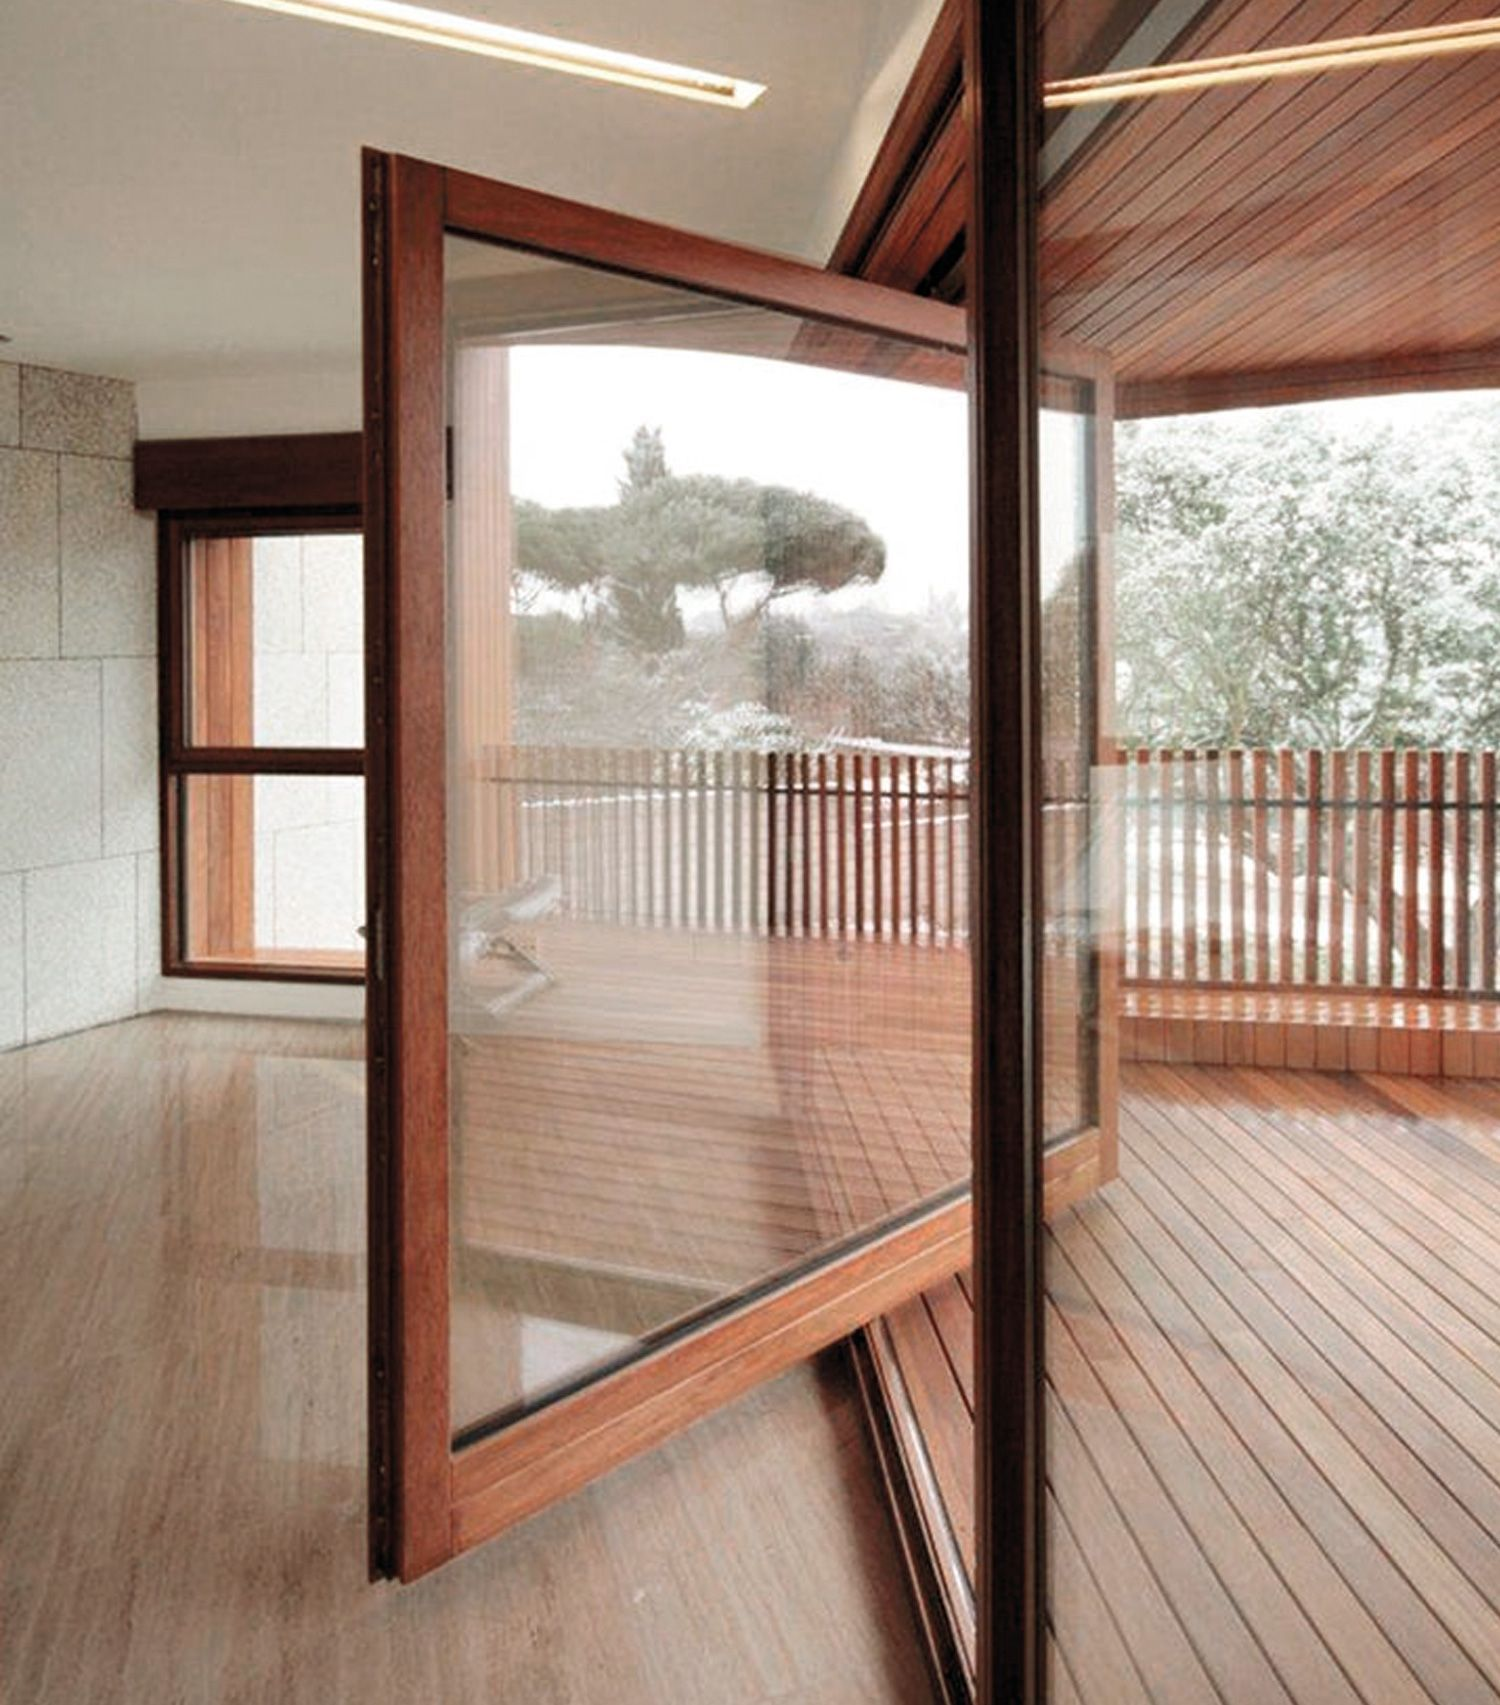 Vertical pivot windows or french doors with